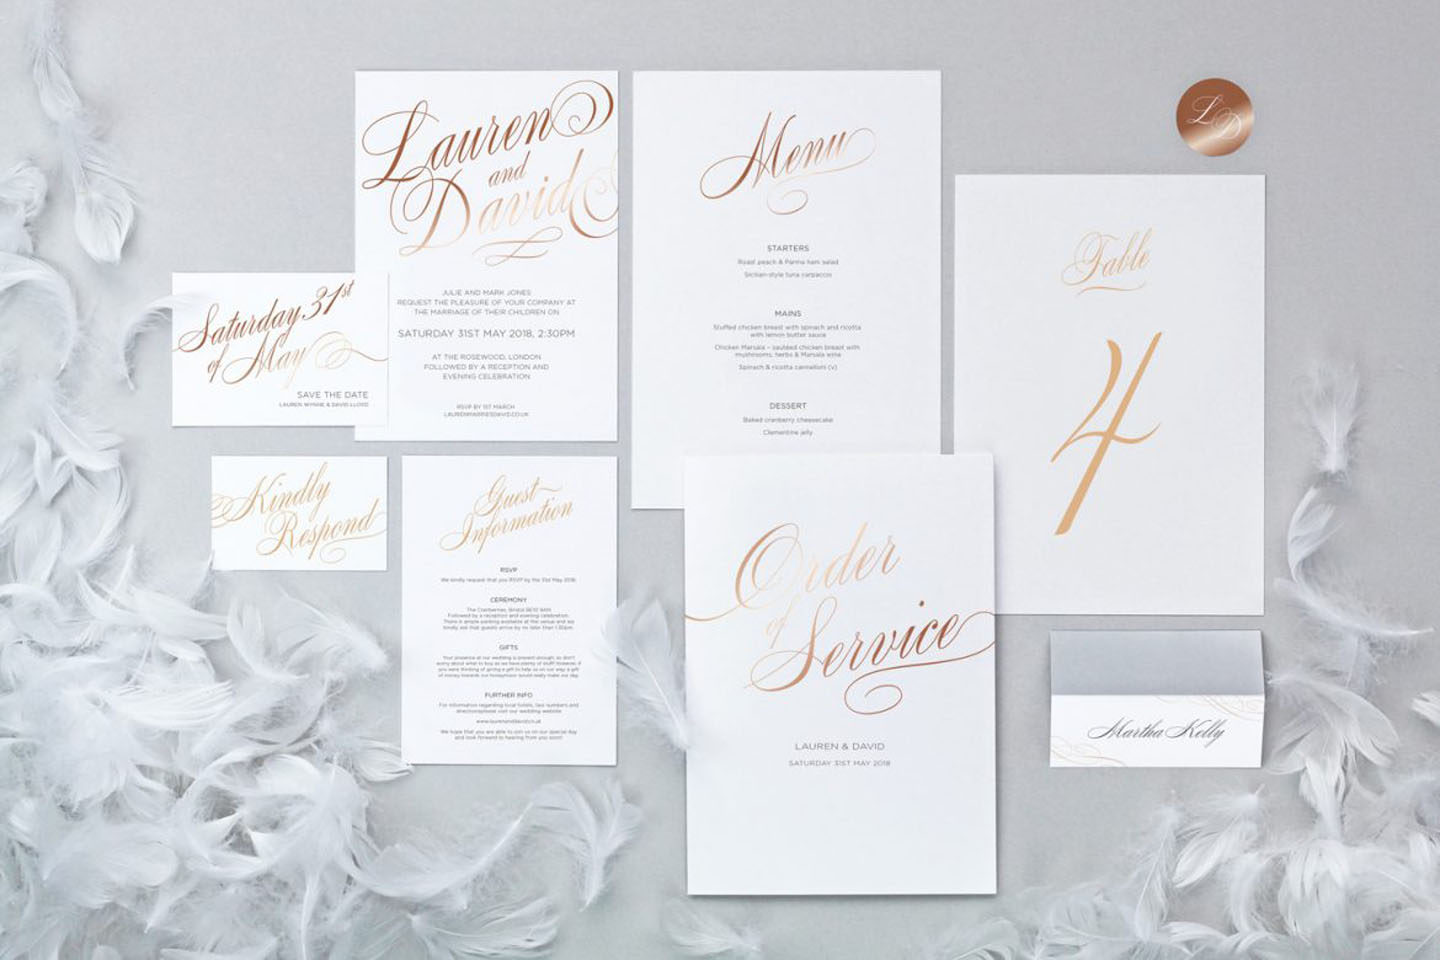 Script Wedding Stationery Collection - Elegant Wedding Stationery by The Foil Invite Company